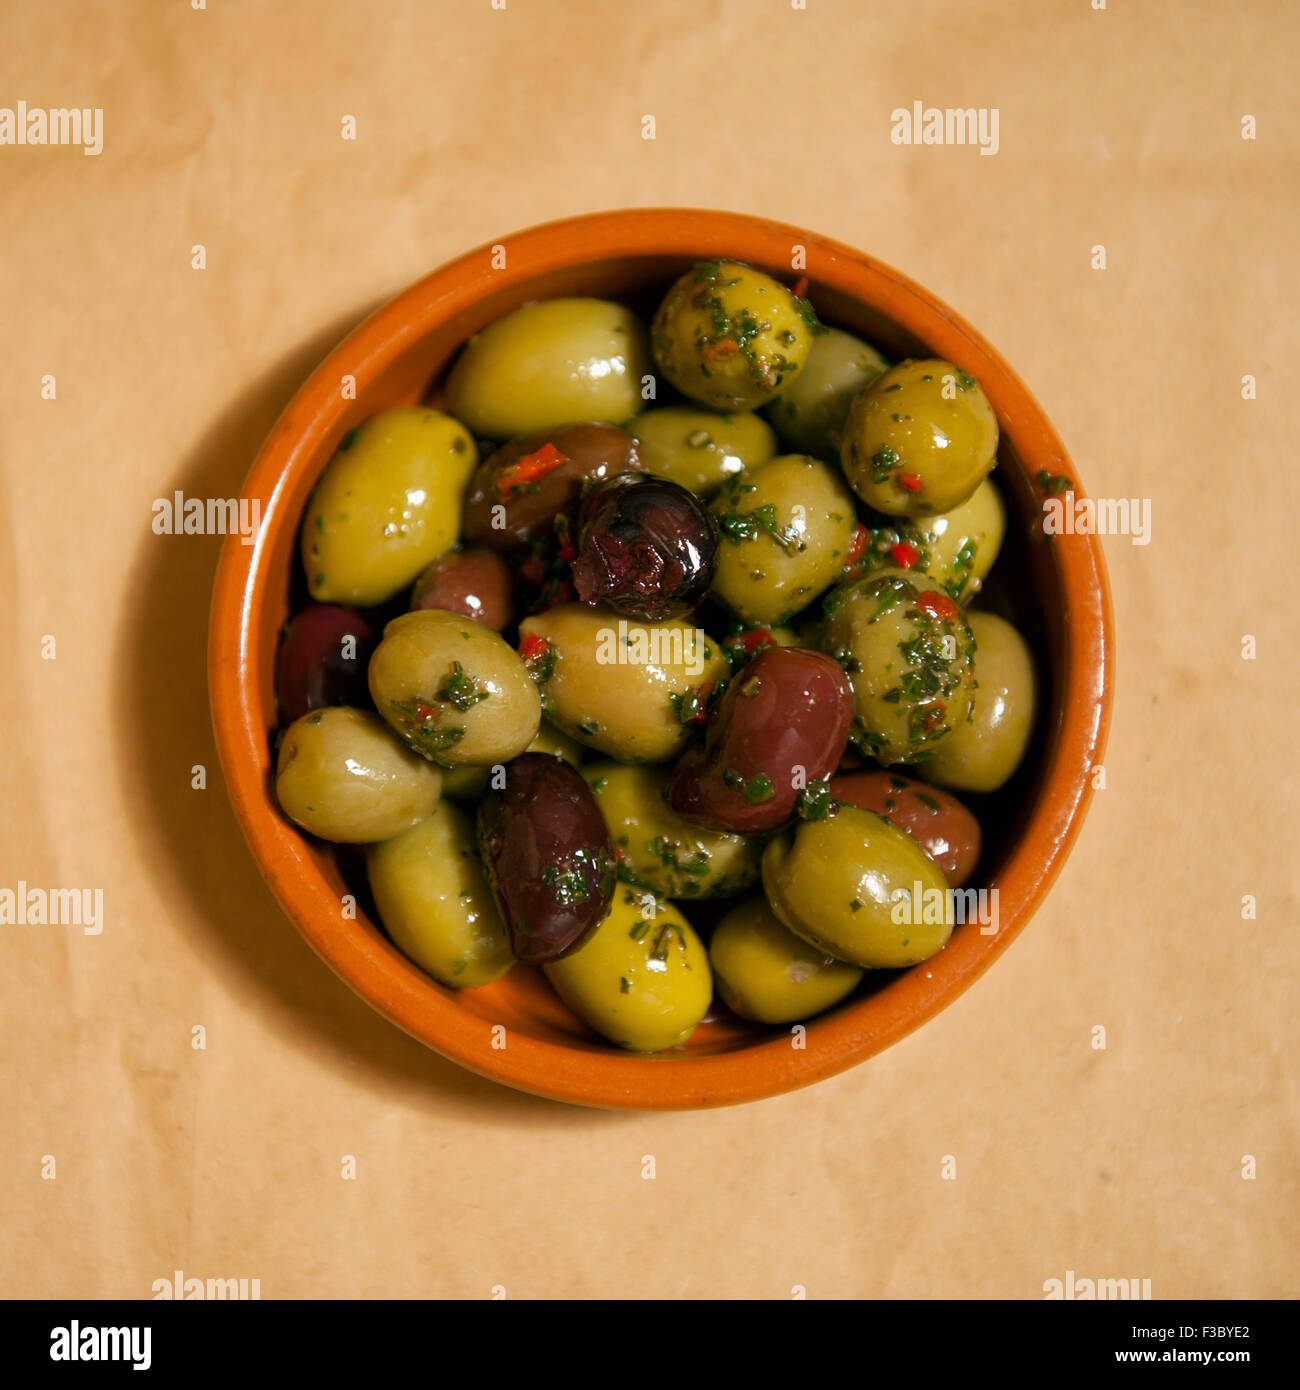 Overhead view of a small bowl of mixed olives - Stock Image